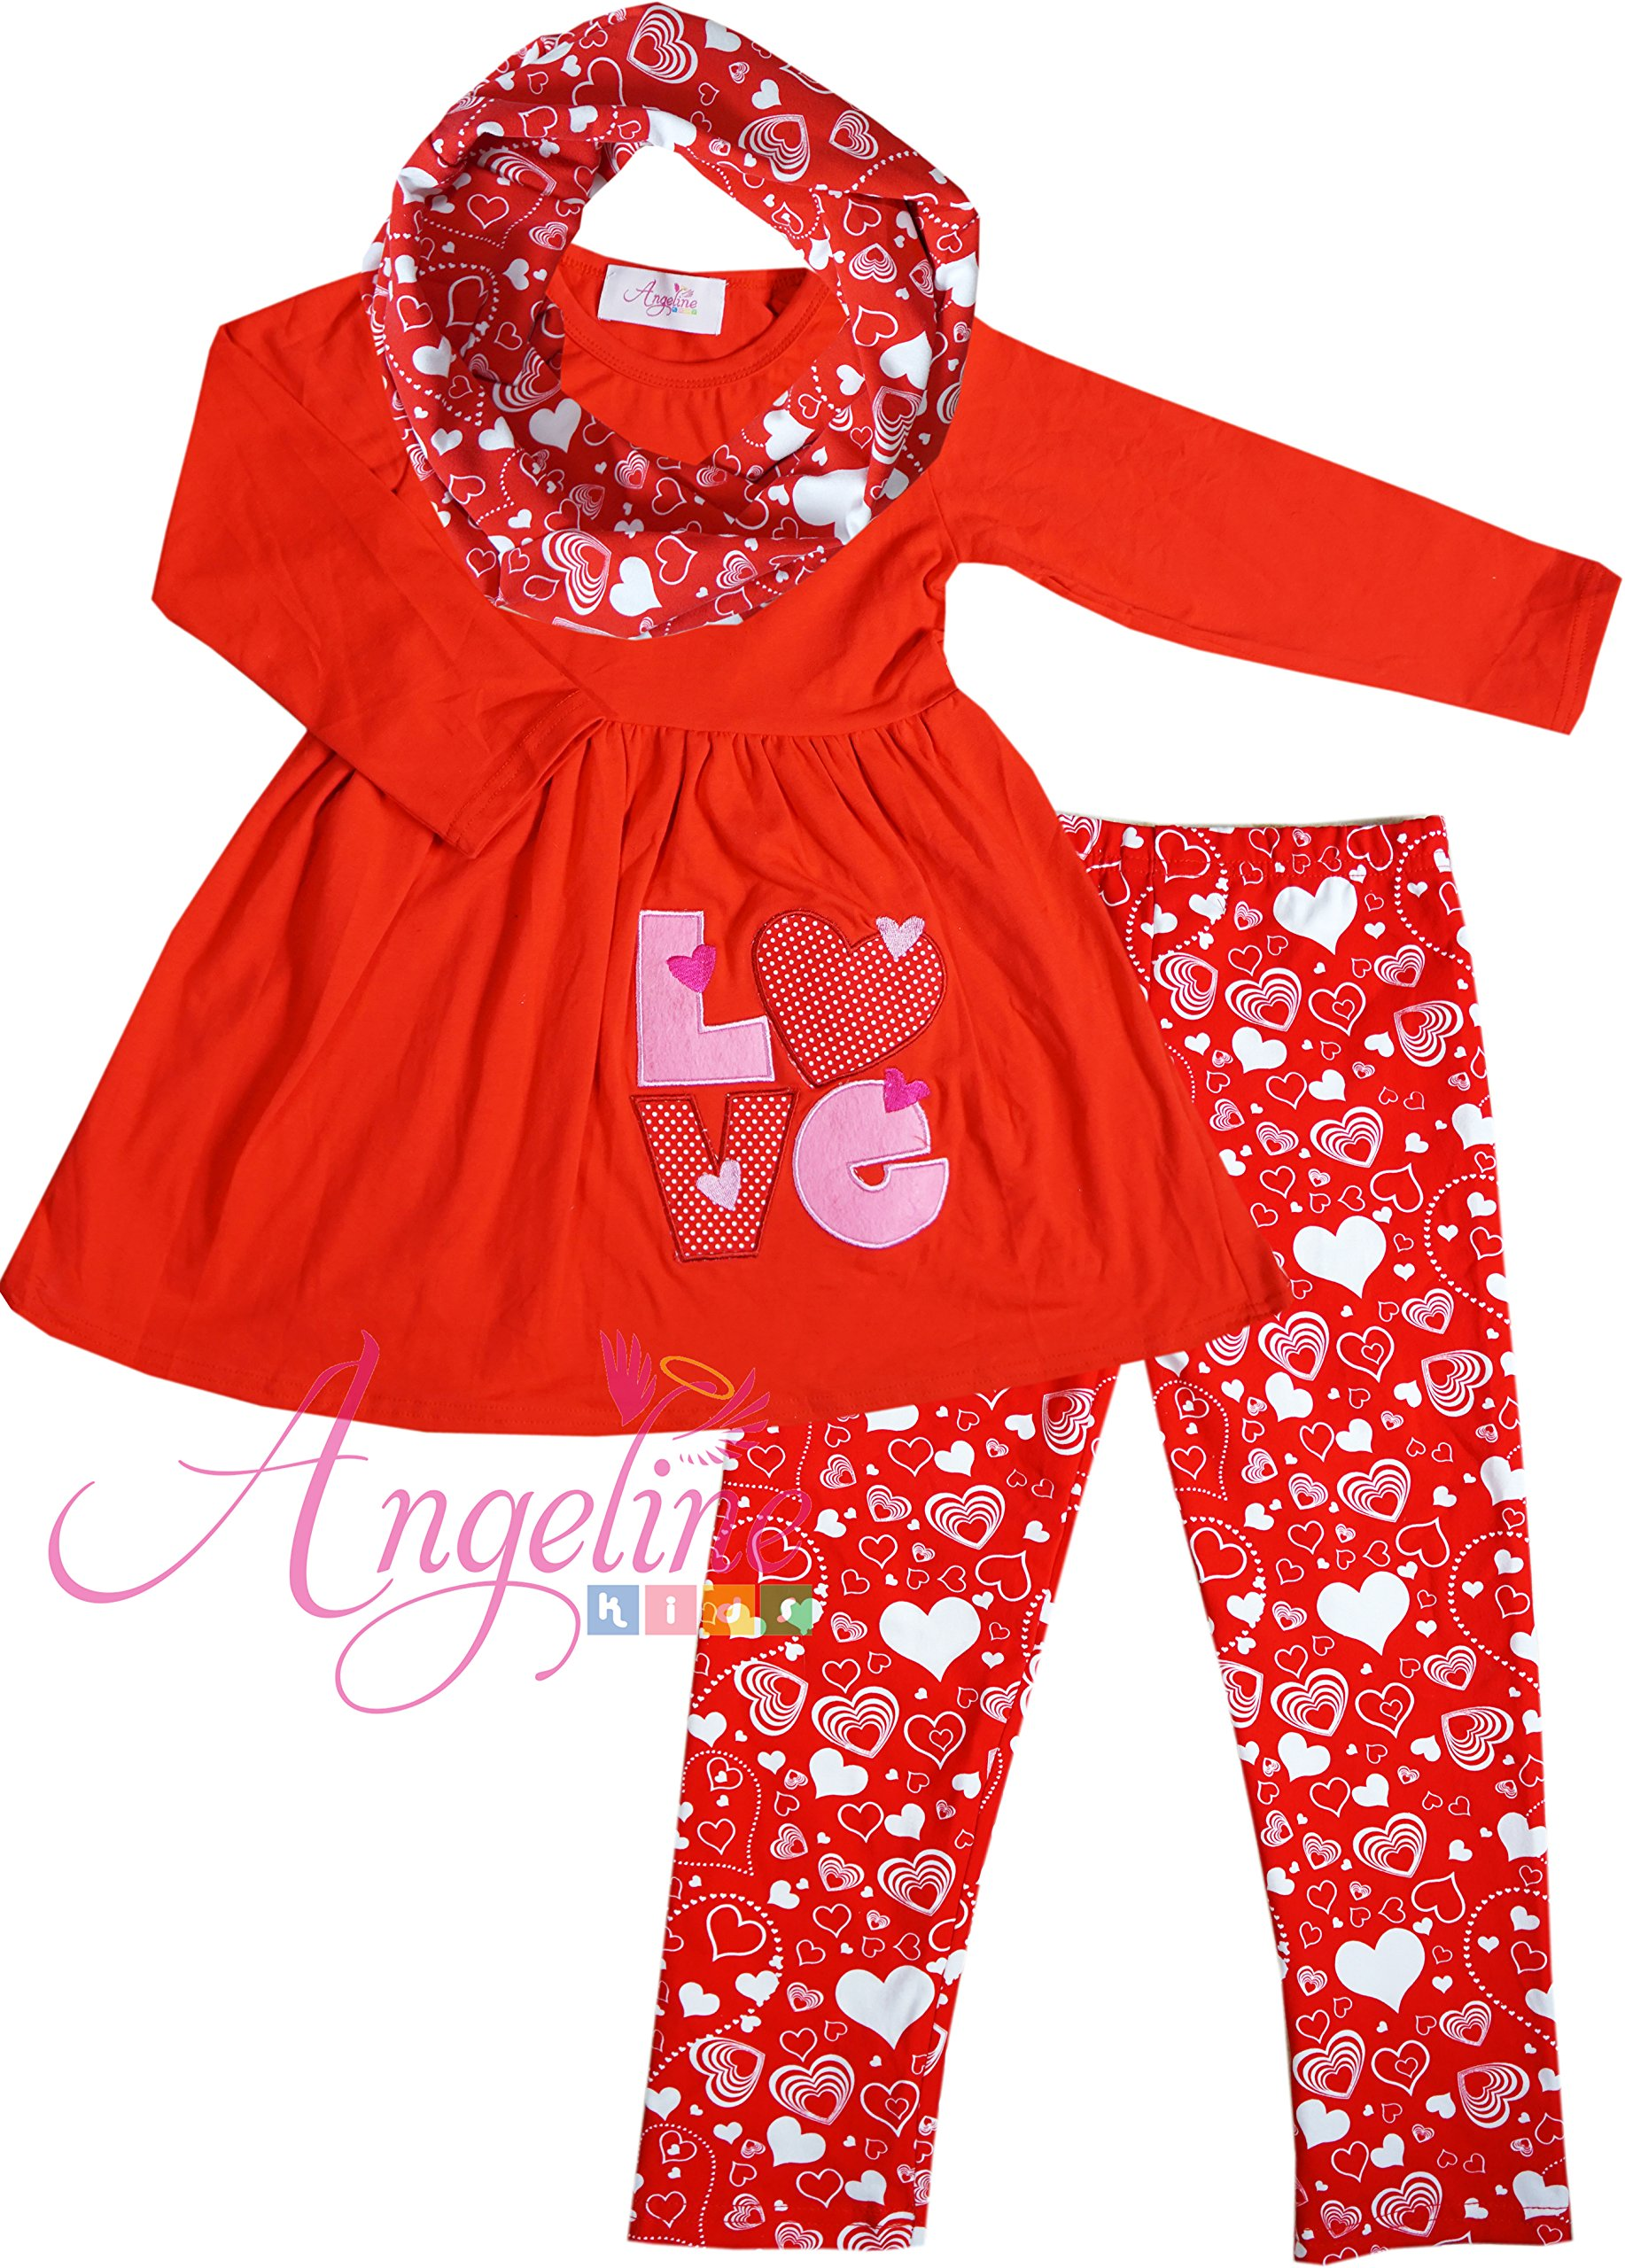 Boutique Clothing Valentine's Day Love Embroidery Heart Party Legging Set Set 2T/XS